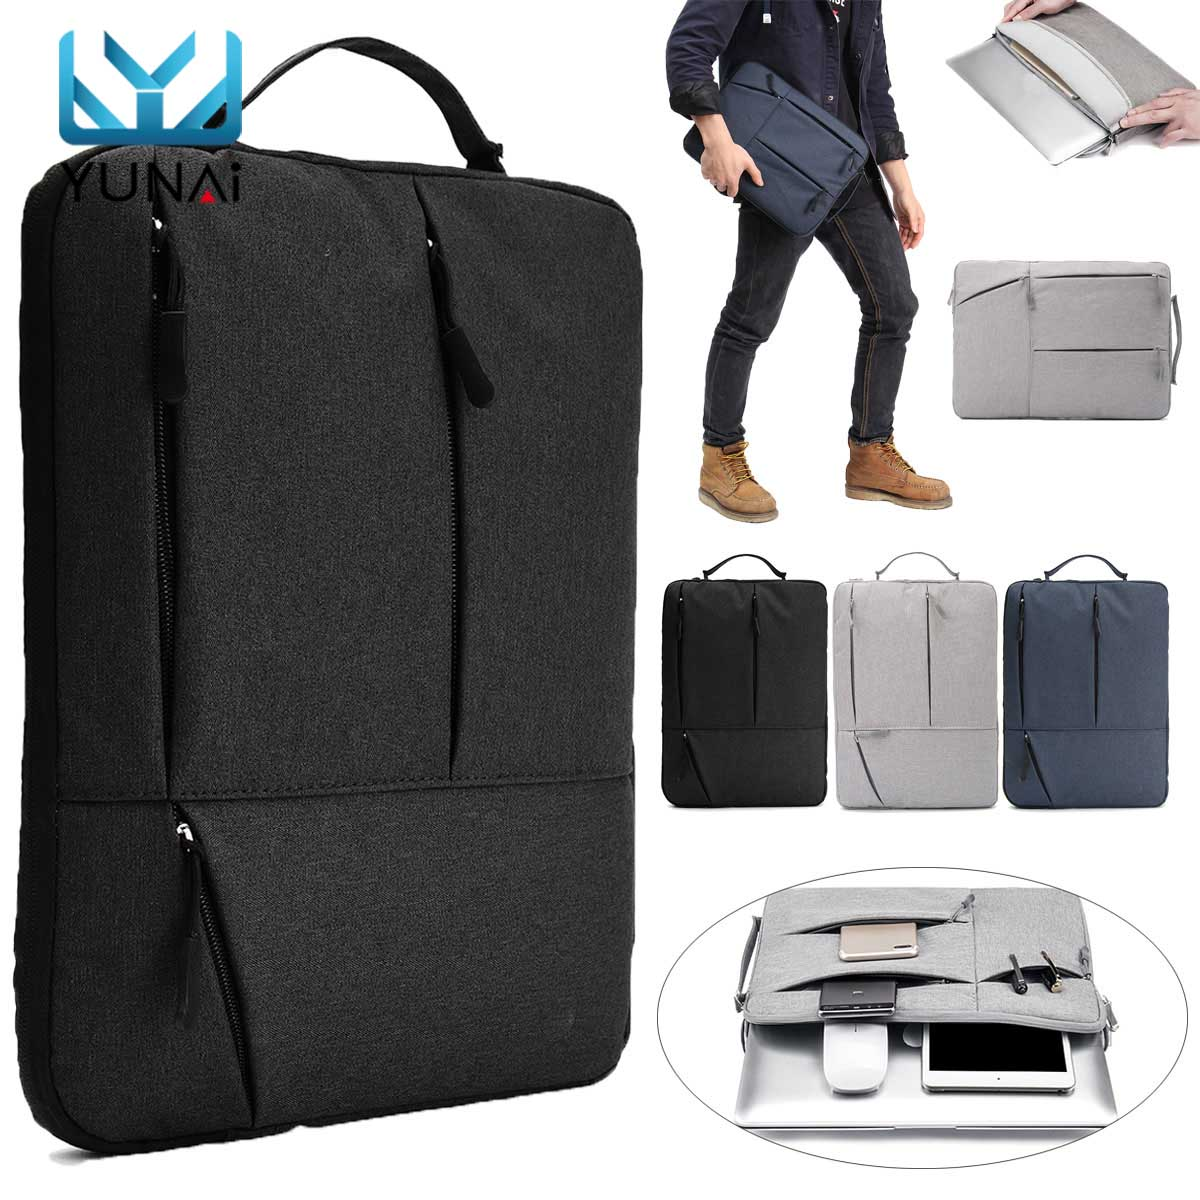 Oxford Fabric Laptop Bag For Macbook Air Pro Retina 11 12 13 Inch Laptop Sleeve Case PC Tablet Case Cover For Xiaomi Air For HP